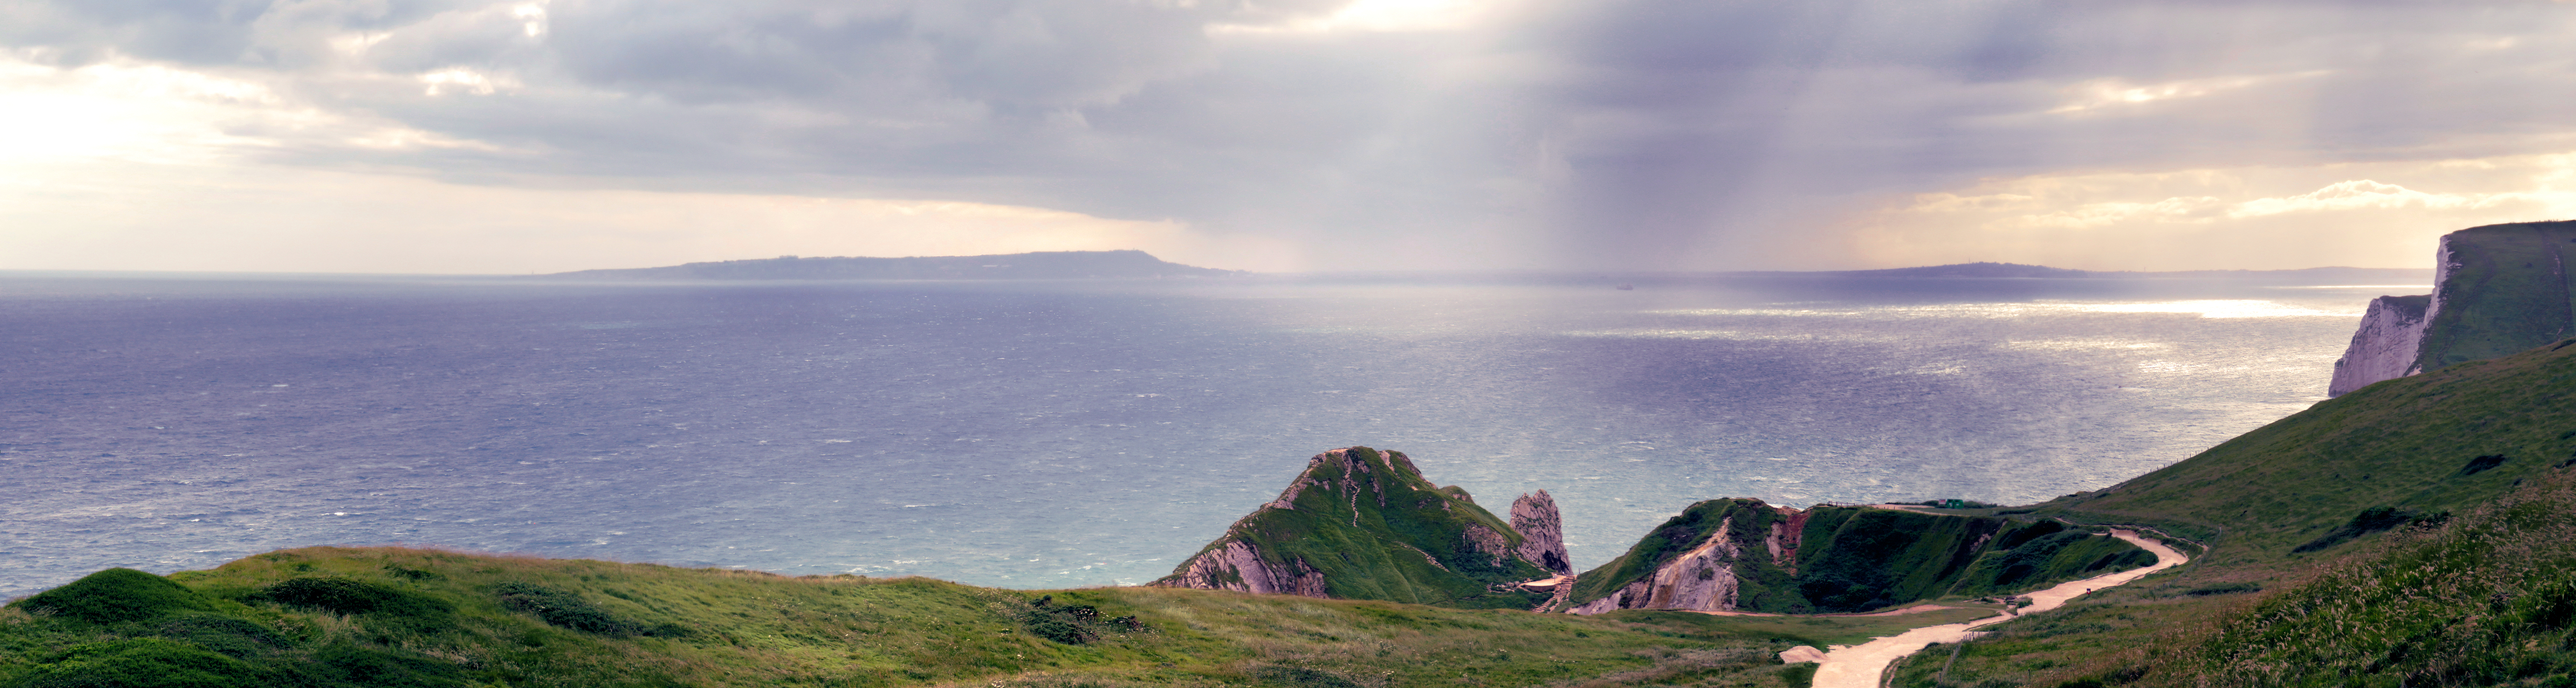 View from clifs above Durdle Door at dusk with rain approaching over the sea. : dulder door - pezcame.com